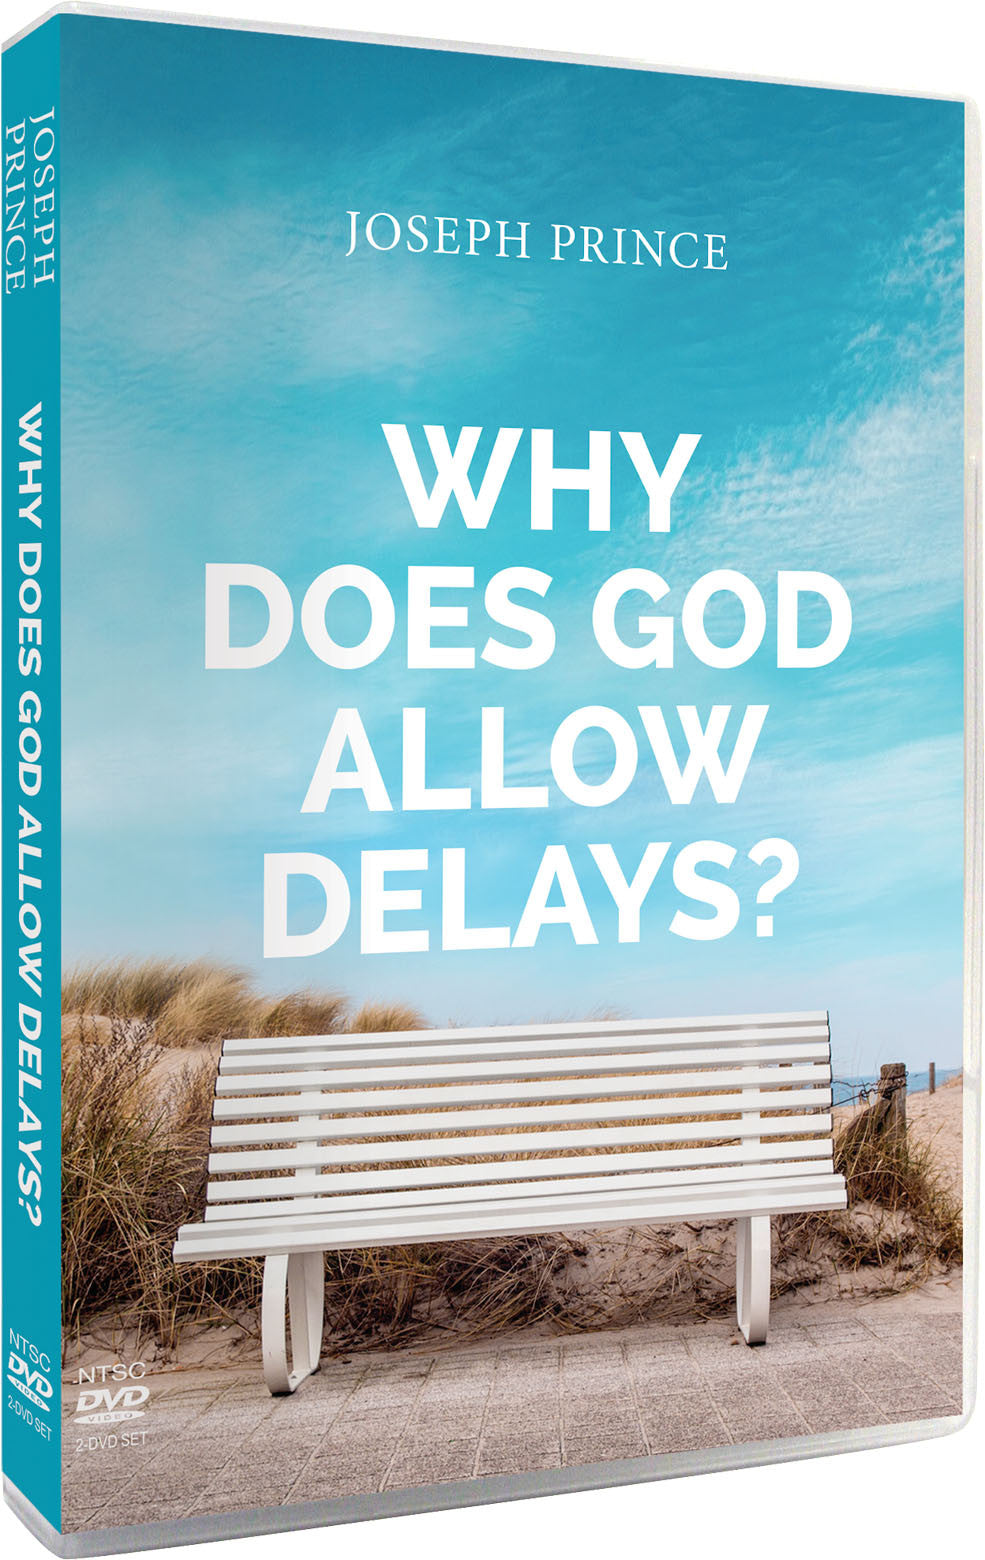 Why Does God Allow Delays? (DVD Album)